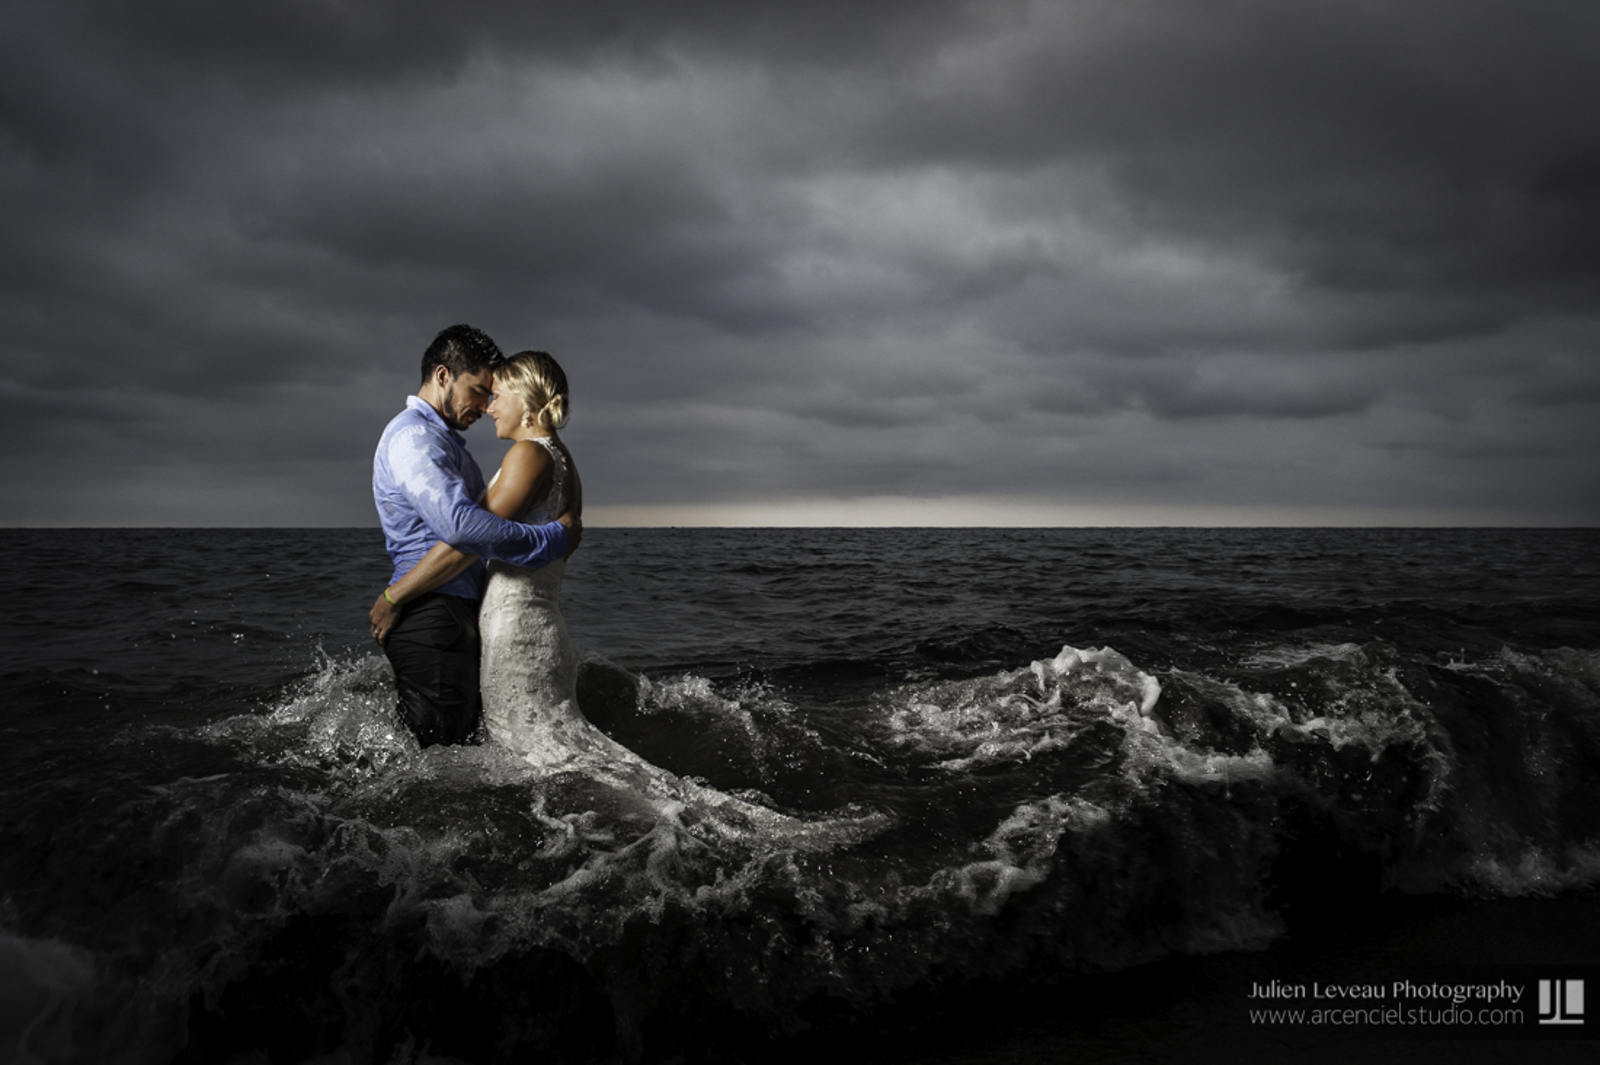 Wedding Photographer - Photo session during hurricane